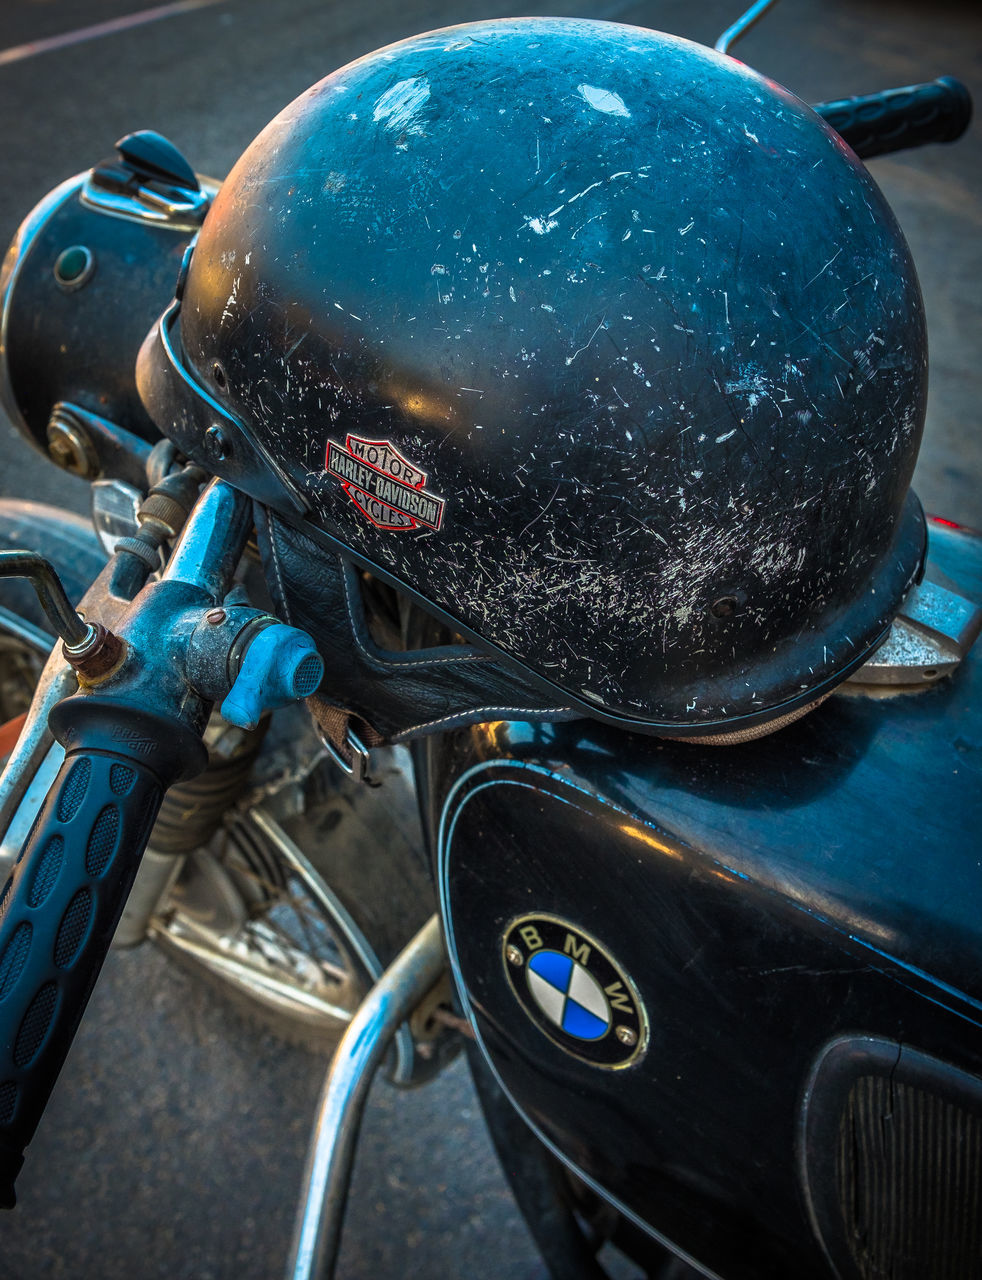 motorcycle, transportation, mode of transport, bicycle, land vehicle, helmet, stationary, day, outdoors, headwear, close-up, no people